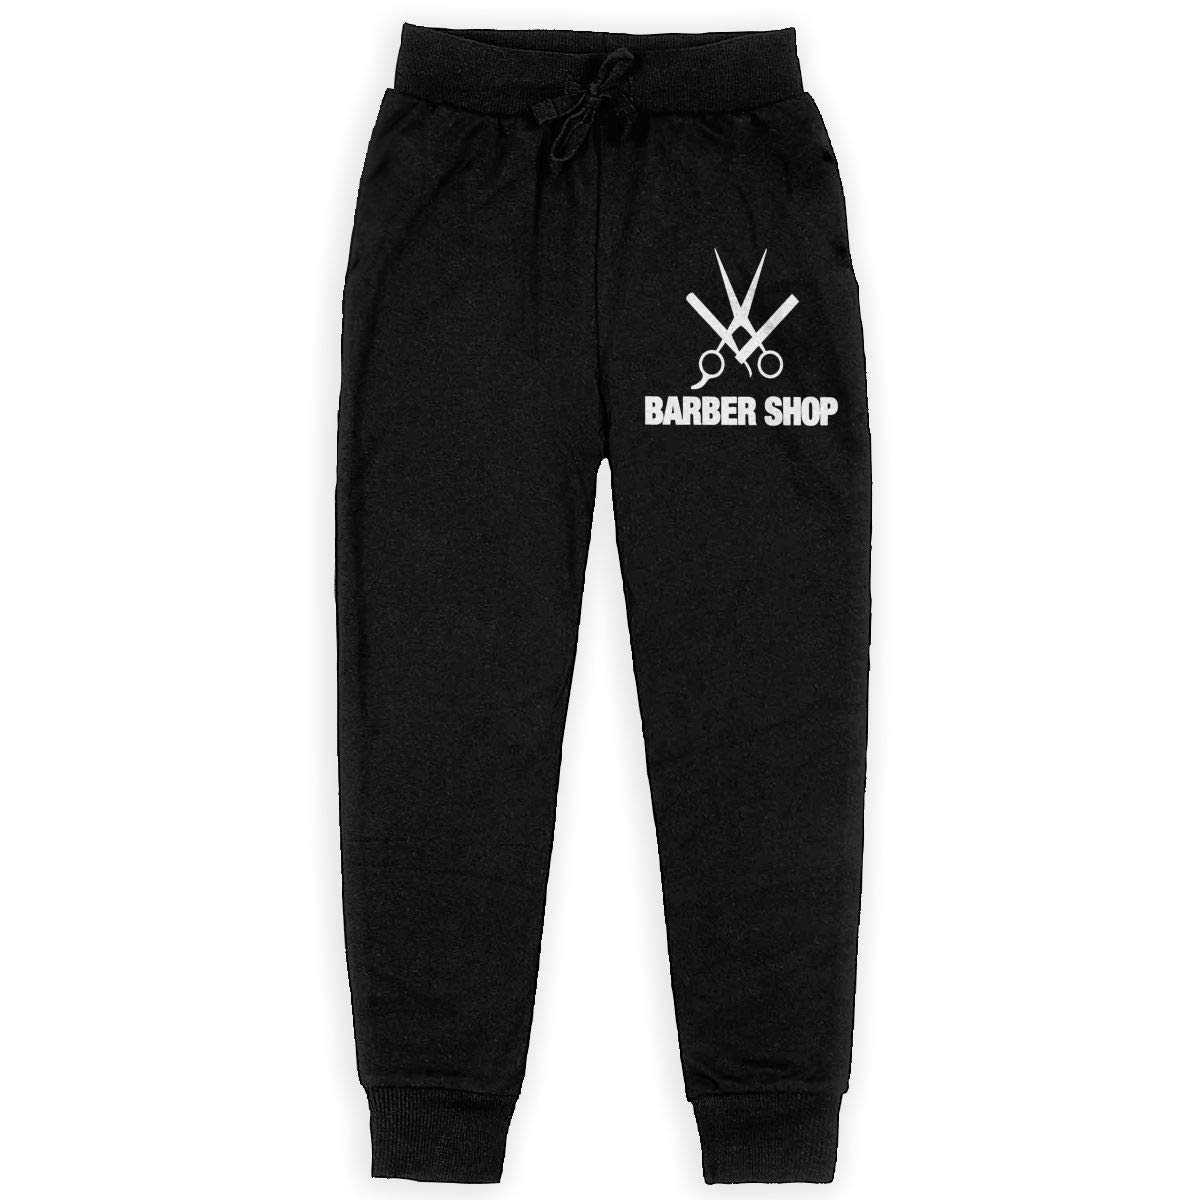 Ji88pX@ Workout Leggings for Men Ultra Soft Barber Shop Cotton Sweatpants for Youth